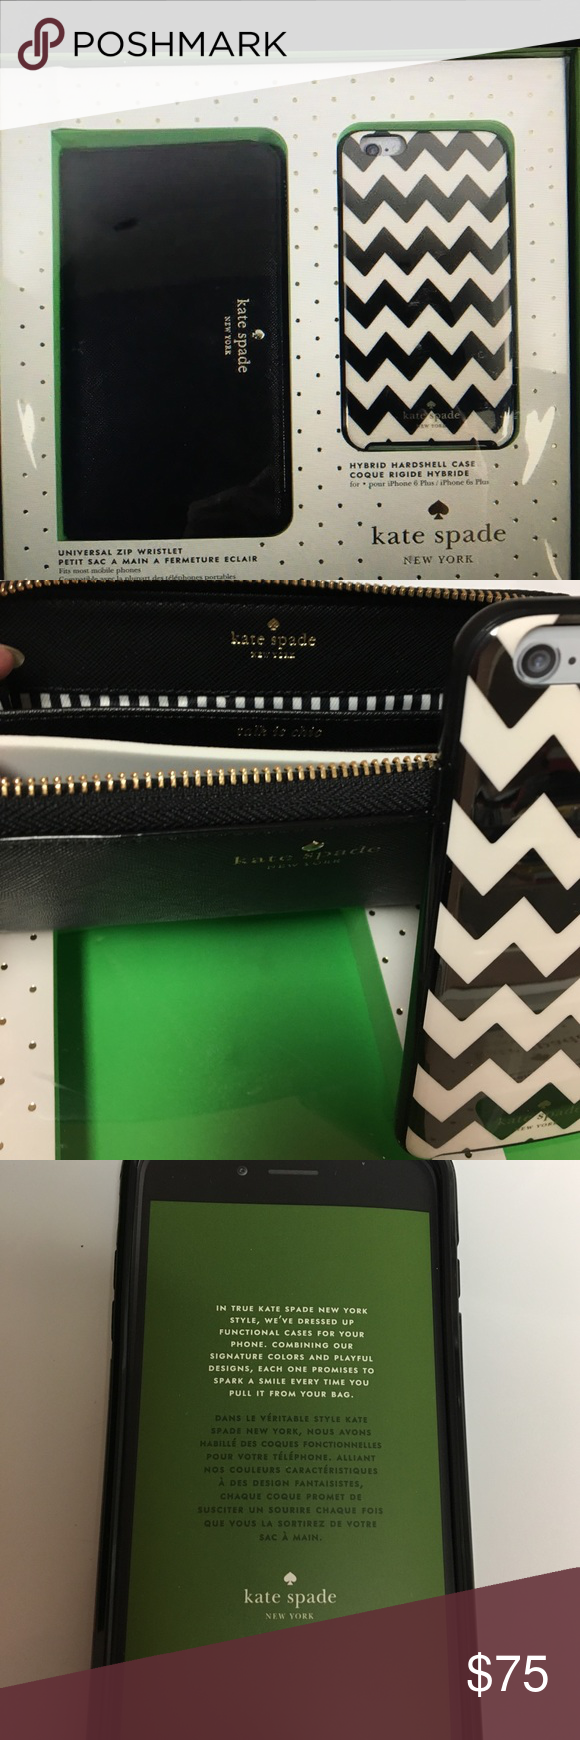 NIB Kate Spade NY IPHONE 6/6P Case and Wristlet ♠️ Wristlet and flexible hardshell case for iPhone 6 and 6+ the zip wristlet provides a convenient place to stash your phone along with your ID credit cards and some cash all in a beautiful gift box kate spade Accessories Phone Cases